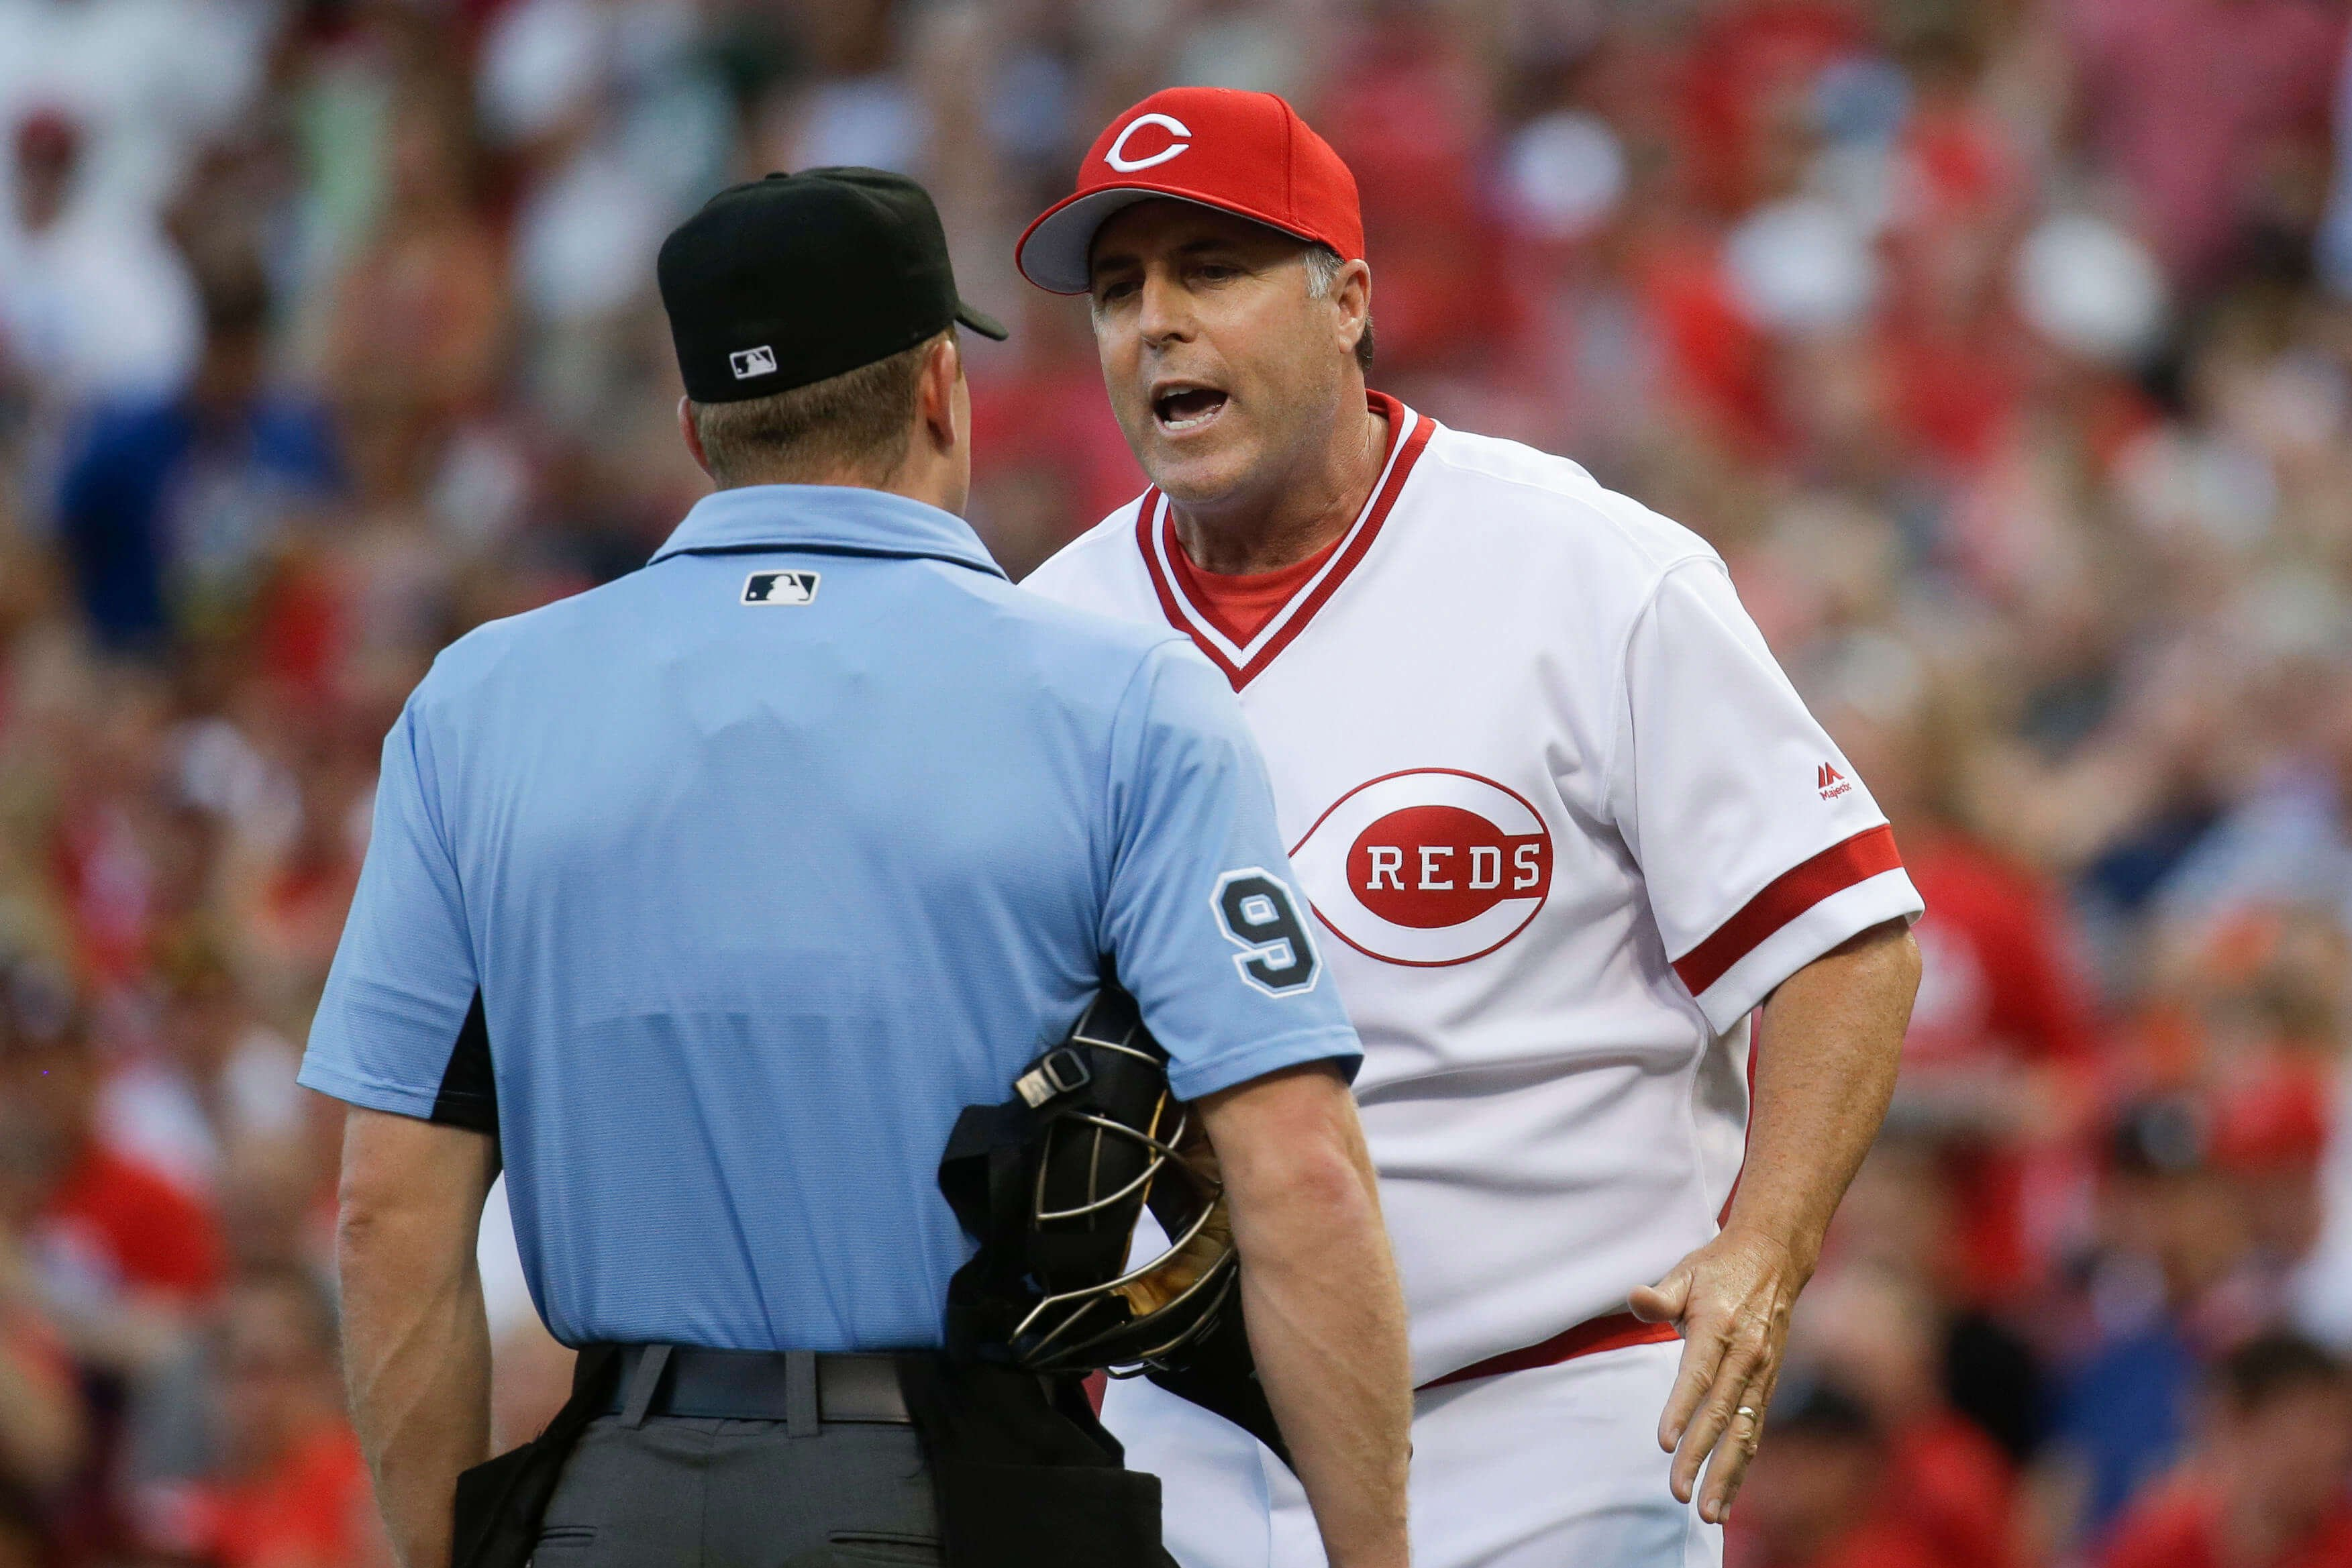 Bryan Price Fired by Reds, Jim Riggleman Named Interim Manager